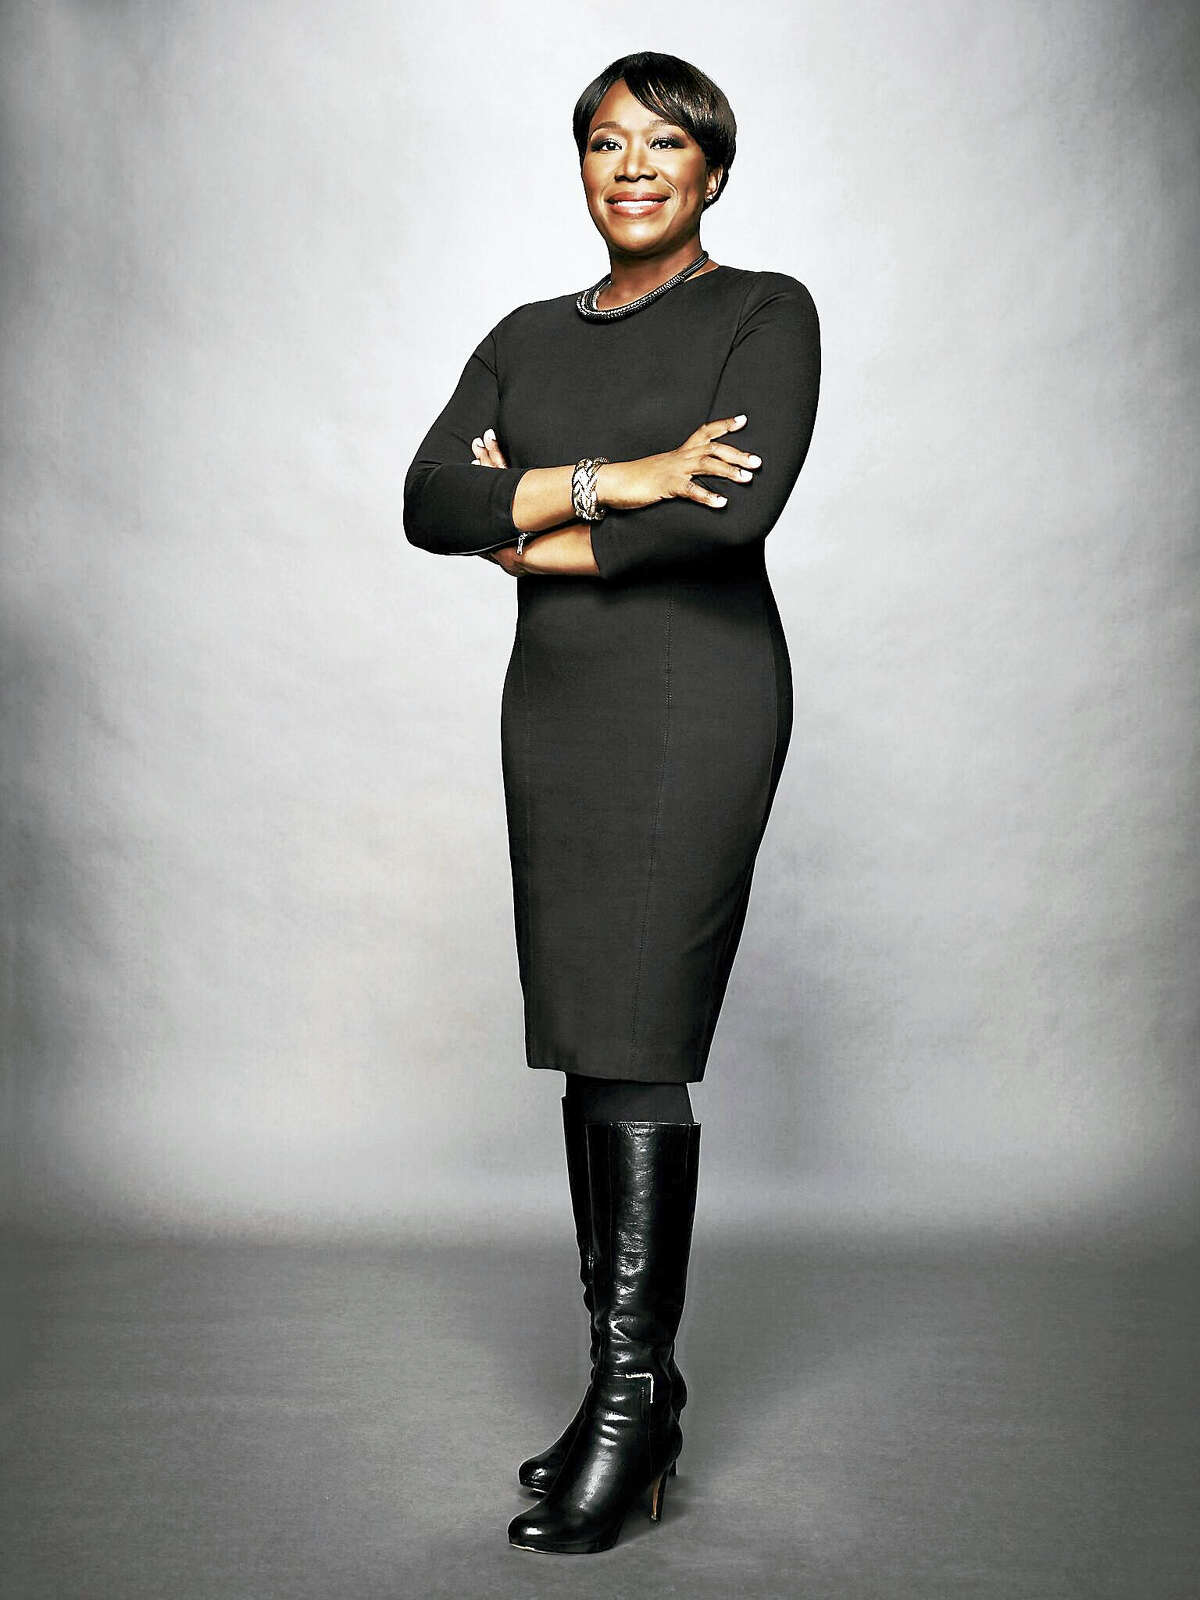 MSNBC host Joy M. Reid will lead a discussion on the current political climate and its impact on the Constitution during a benefit program in Washington on Sunday.